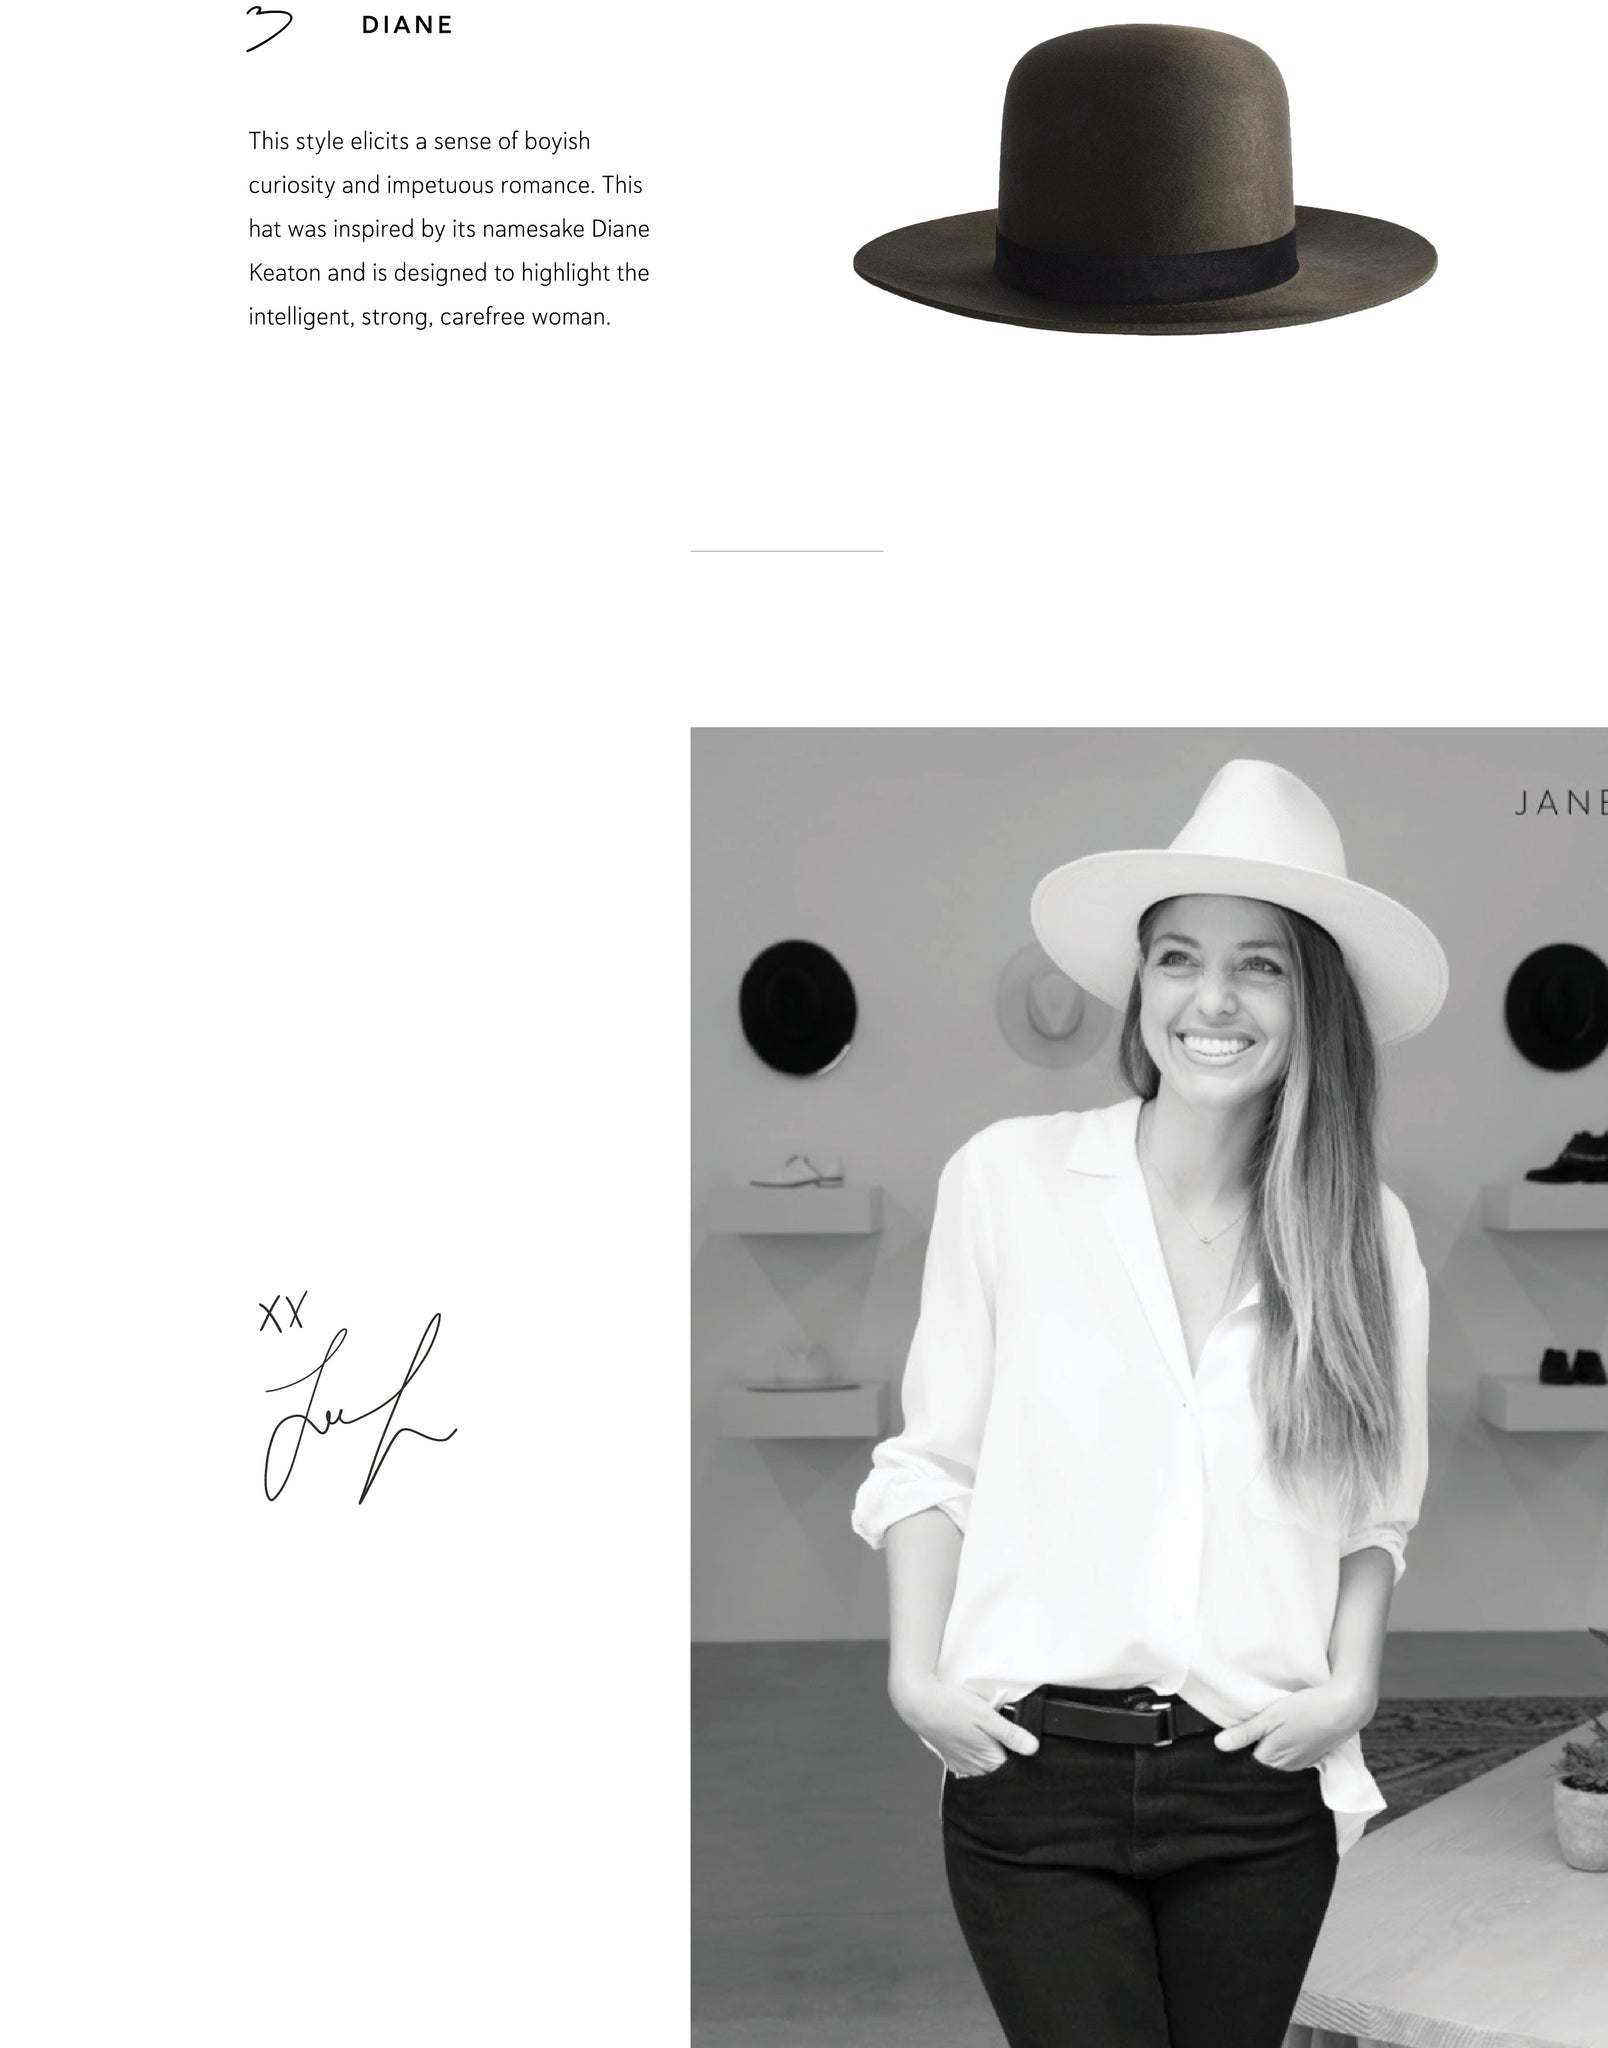 Diane: This style elicits a sense of boyish curiosity and impetuous romance. This hat was inspired by its namesake Diane Keaton and is designed to highlight the intelligent, strong, carefree woman.